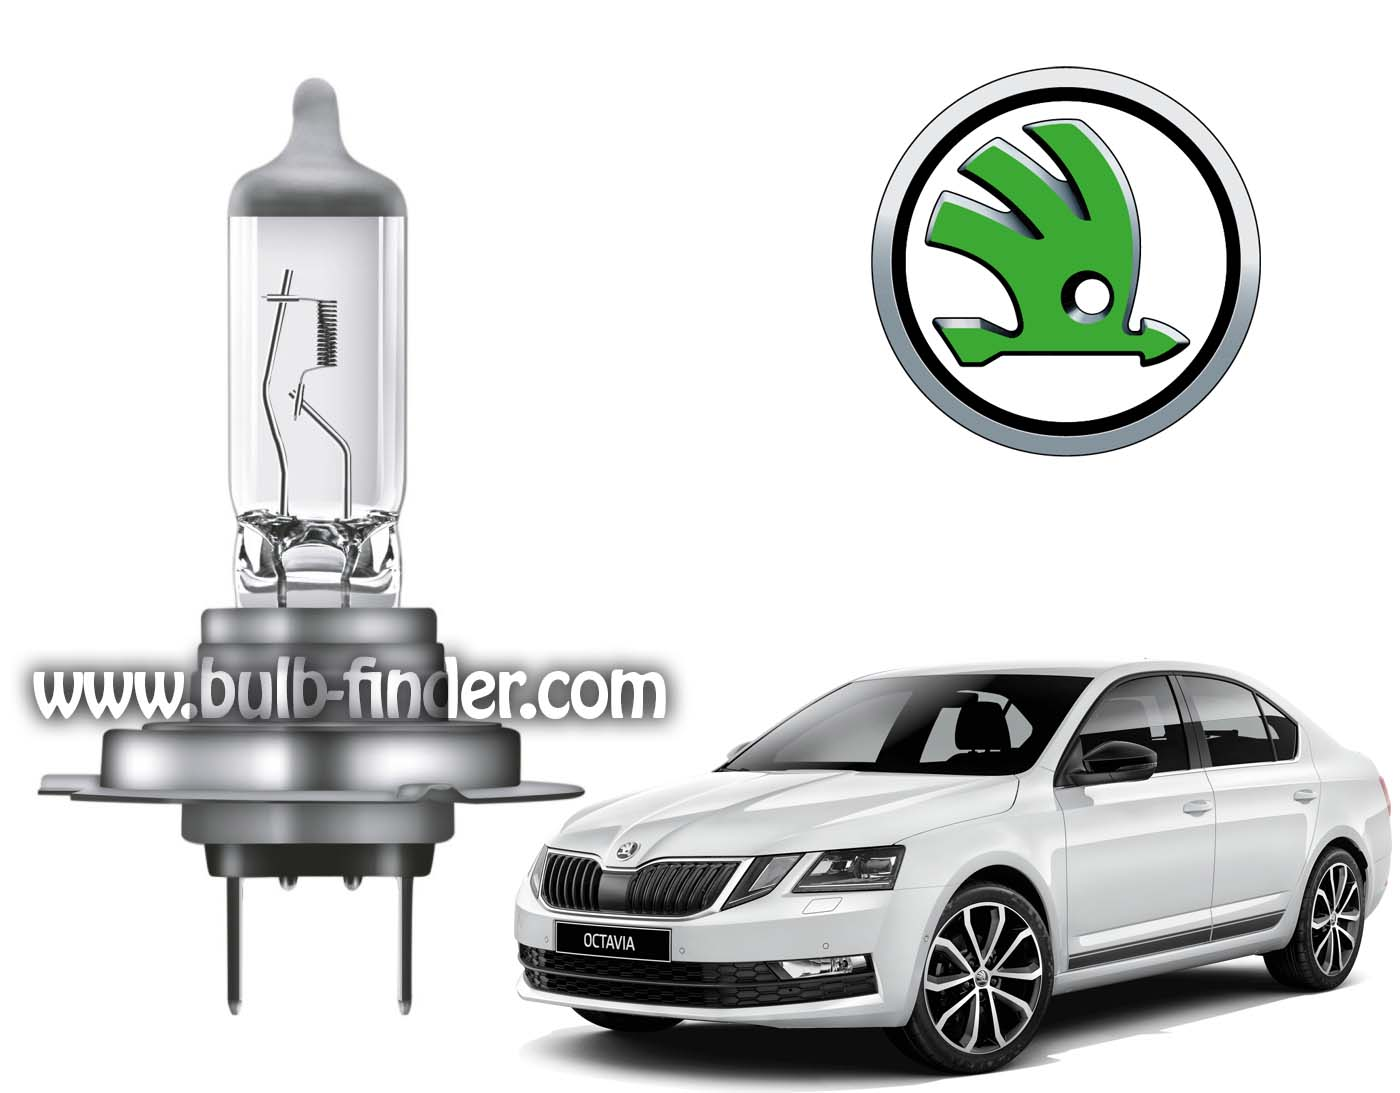 Skoda Octavia bulb model HIGHT BEAM HEADLIGHT